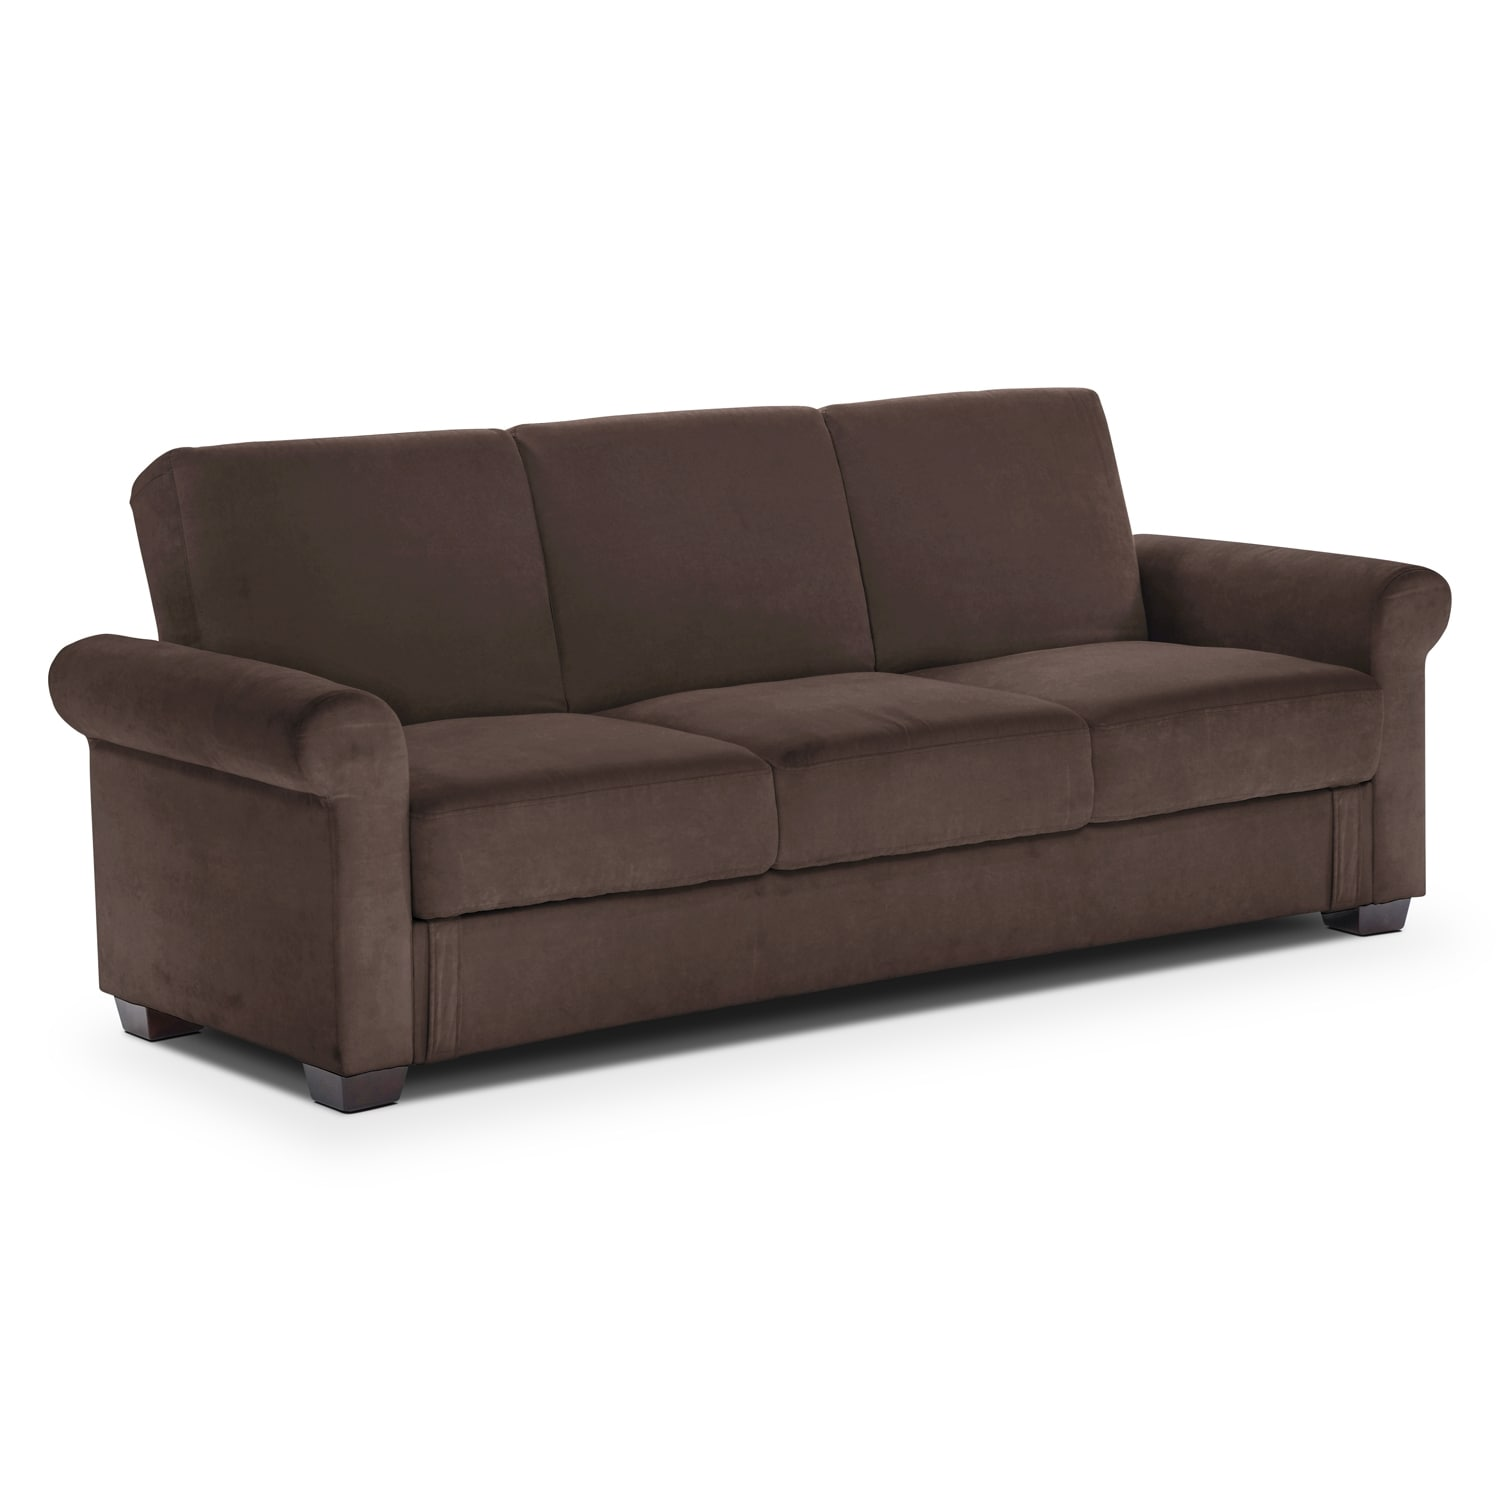 Furnishings for every room online and store furniture sales value city furniture Storage loveseat